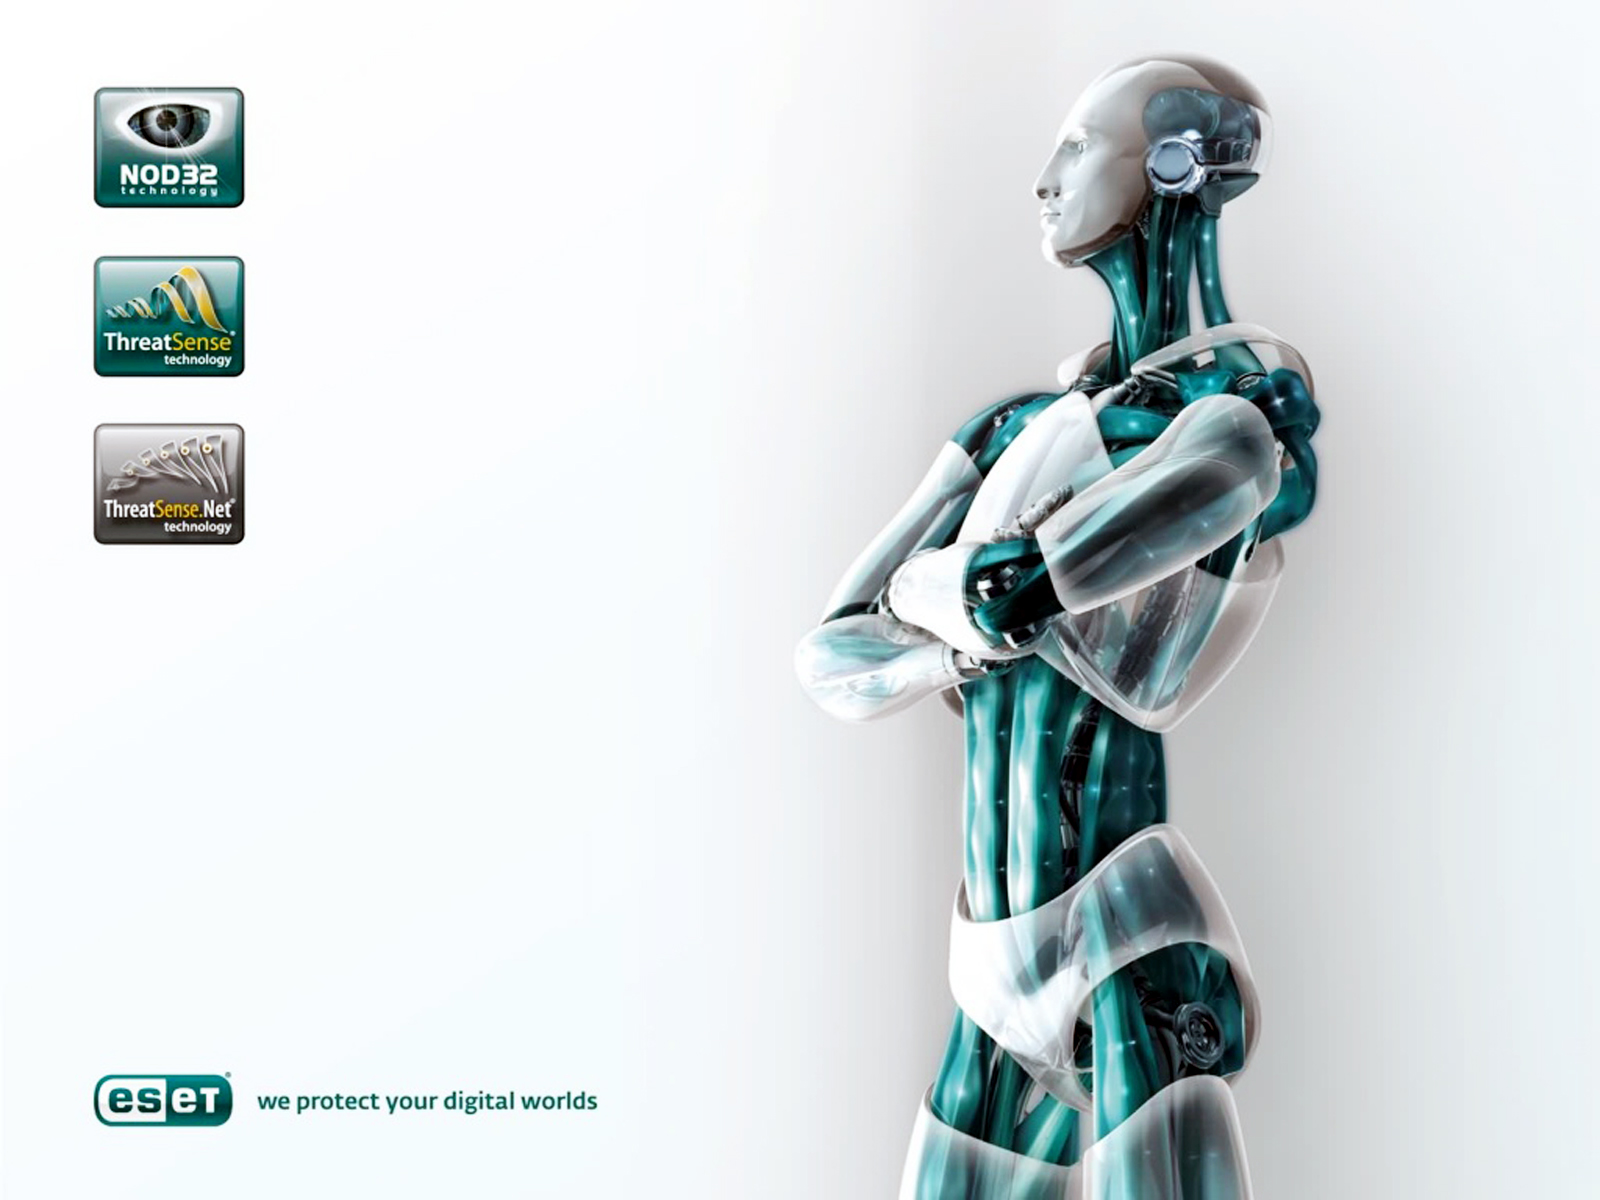 Eset Nod32 3D Robot HD Wallpapers Download Wallpapers in HD for 1600x1200